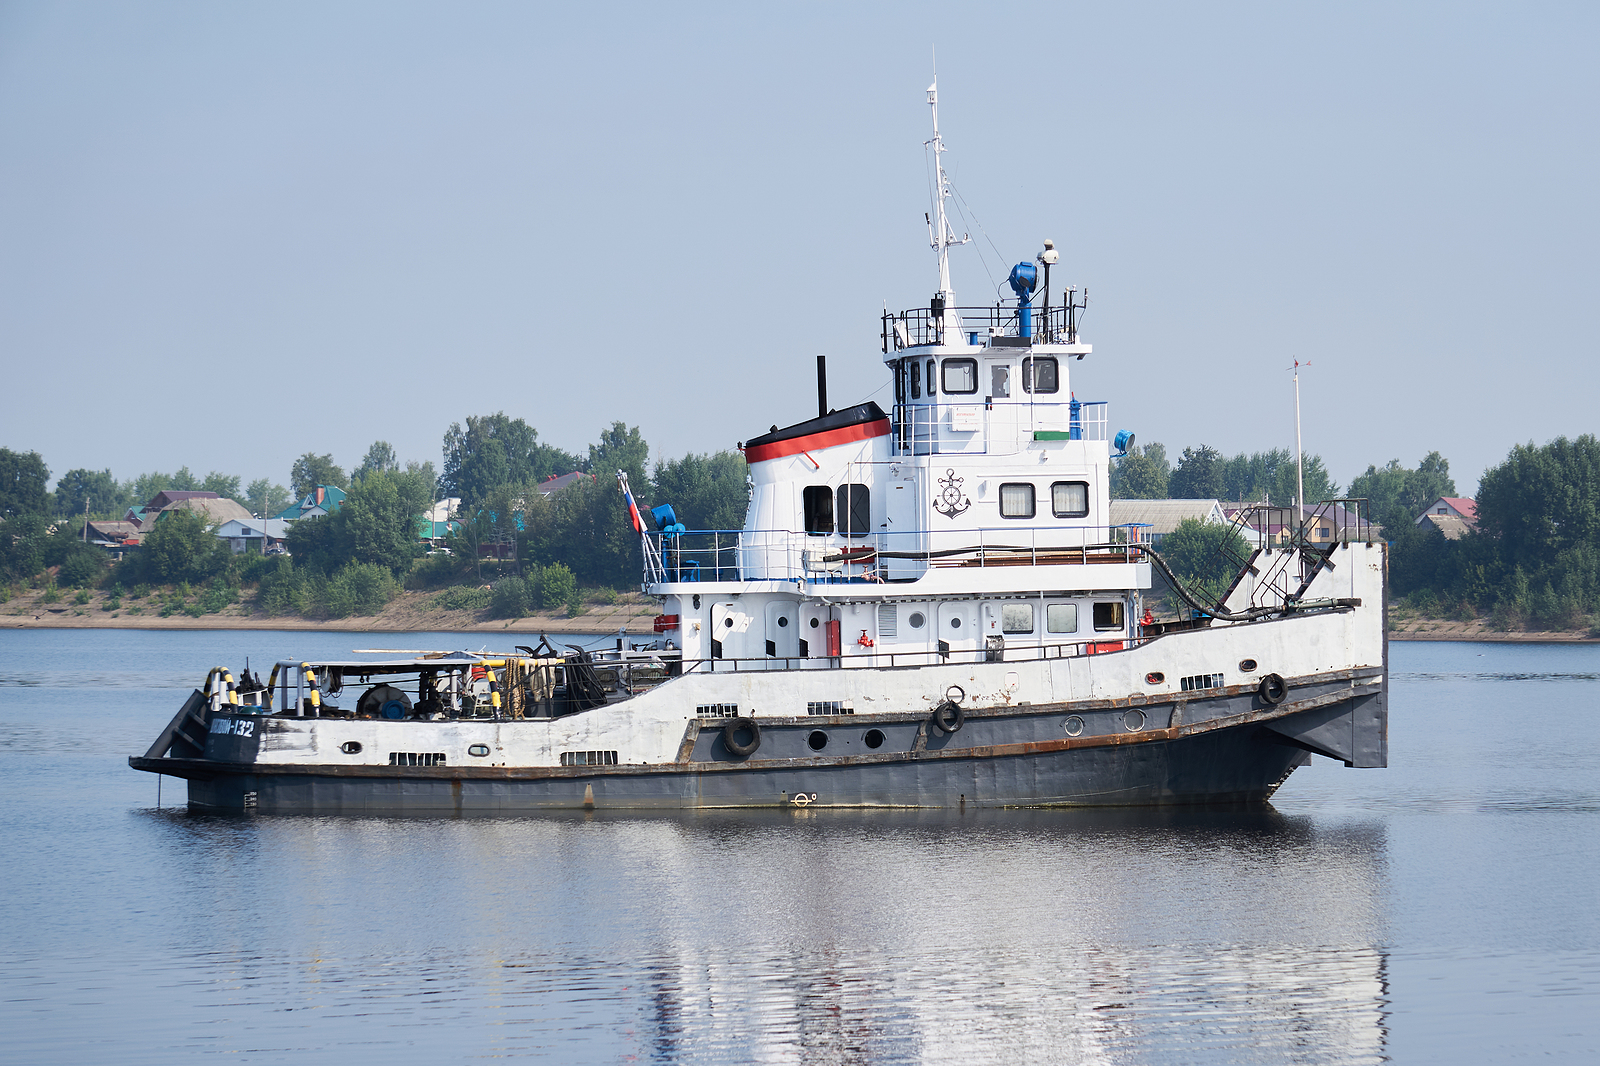 Perm Krai, Russia - July 27, 2020: Towboat On The Kama River